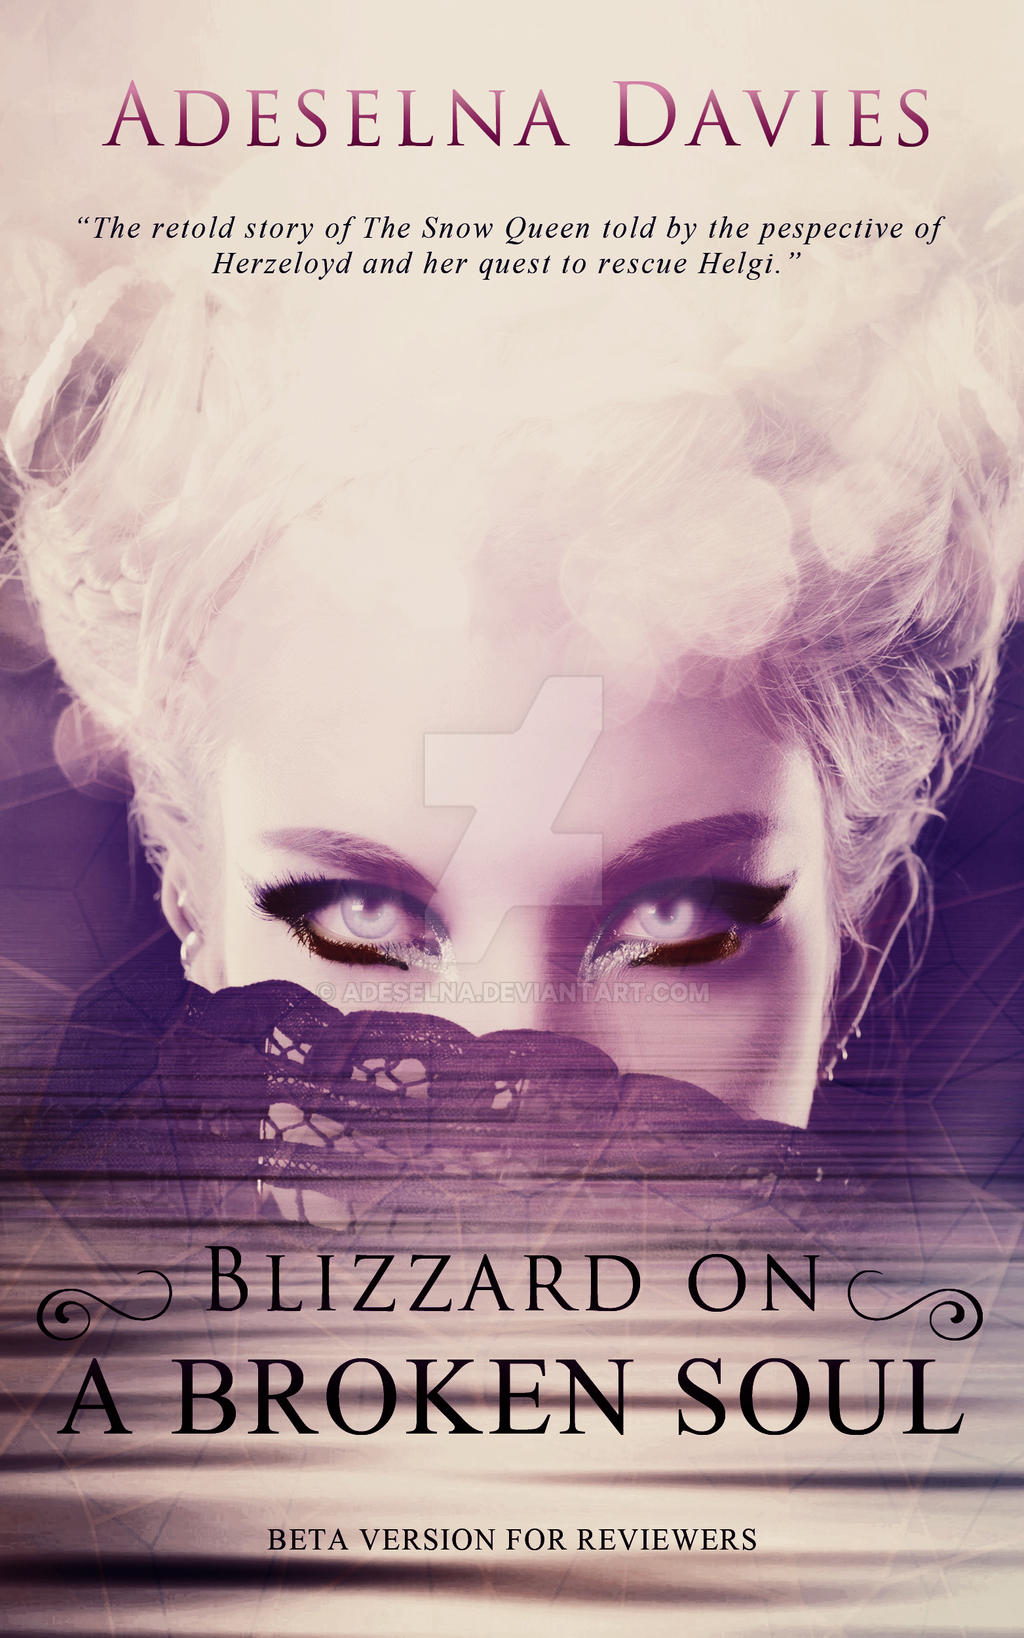 Blizzard on a broken soul by Adeselna